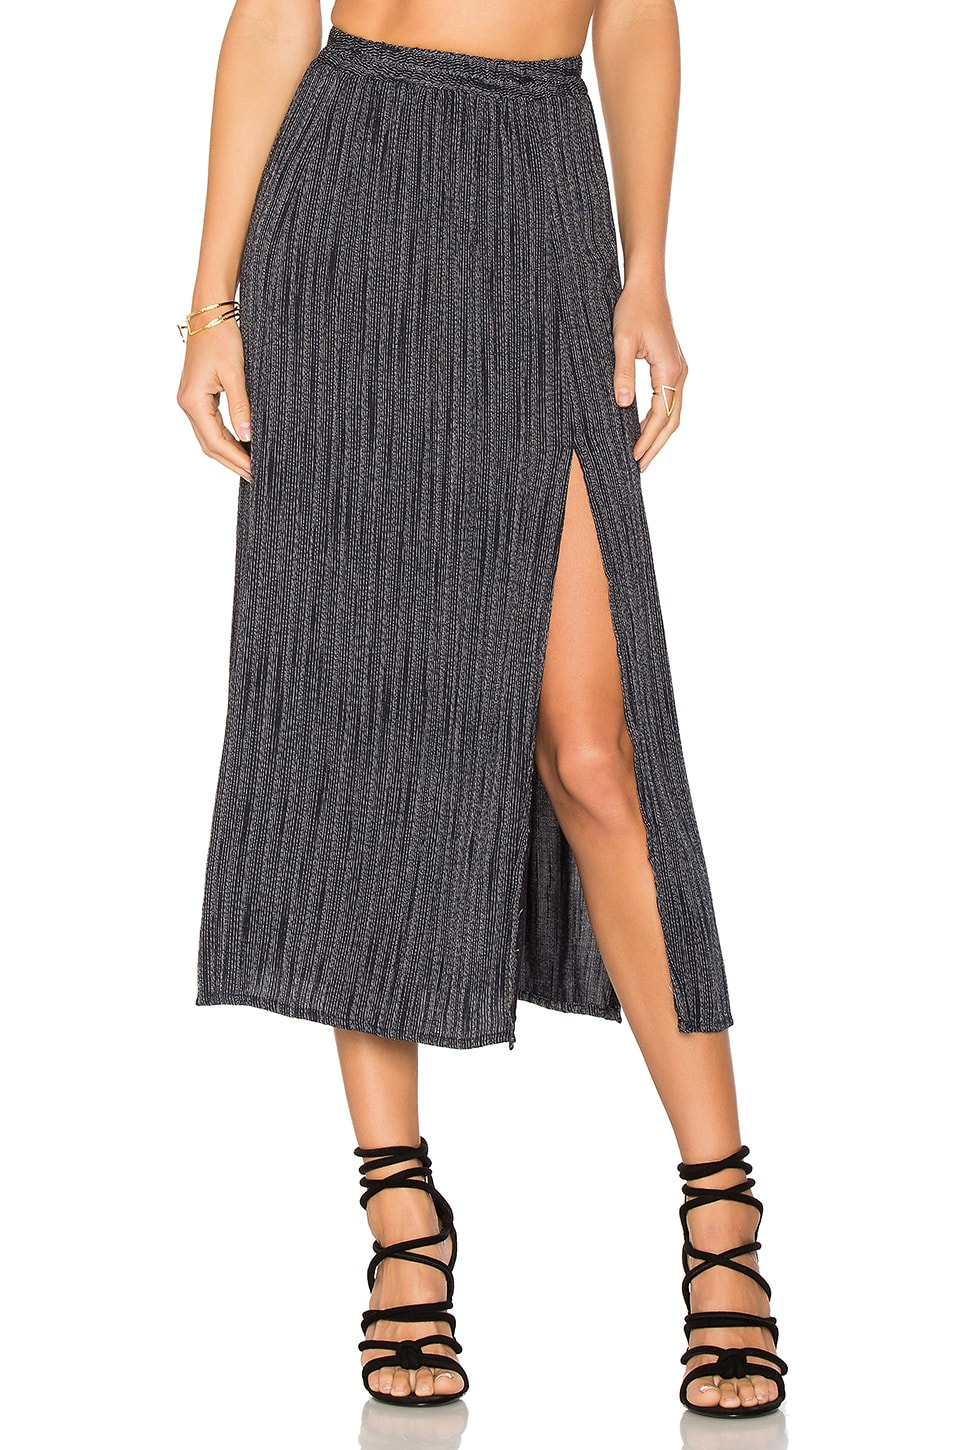 Desert Dune Skirt by BEC&BRIDGE